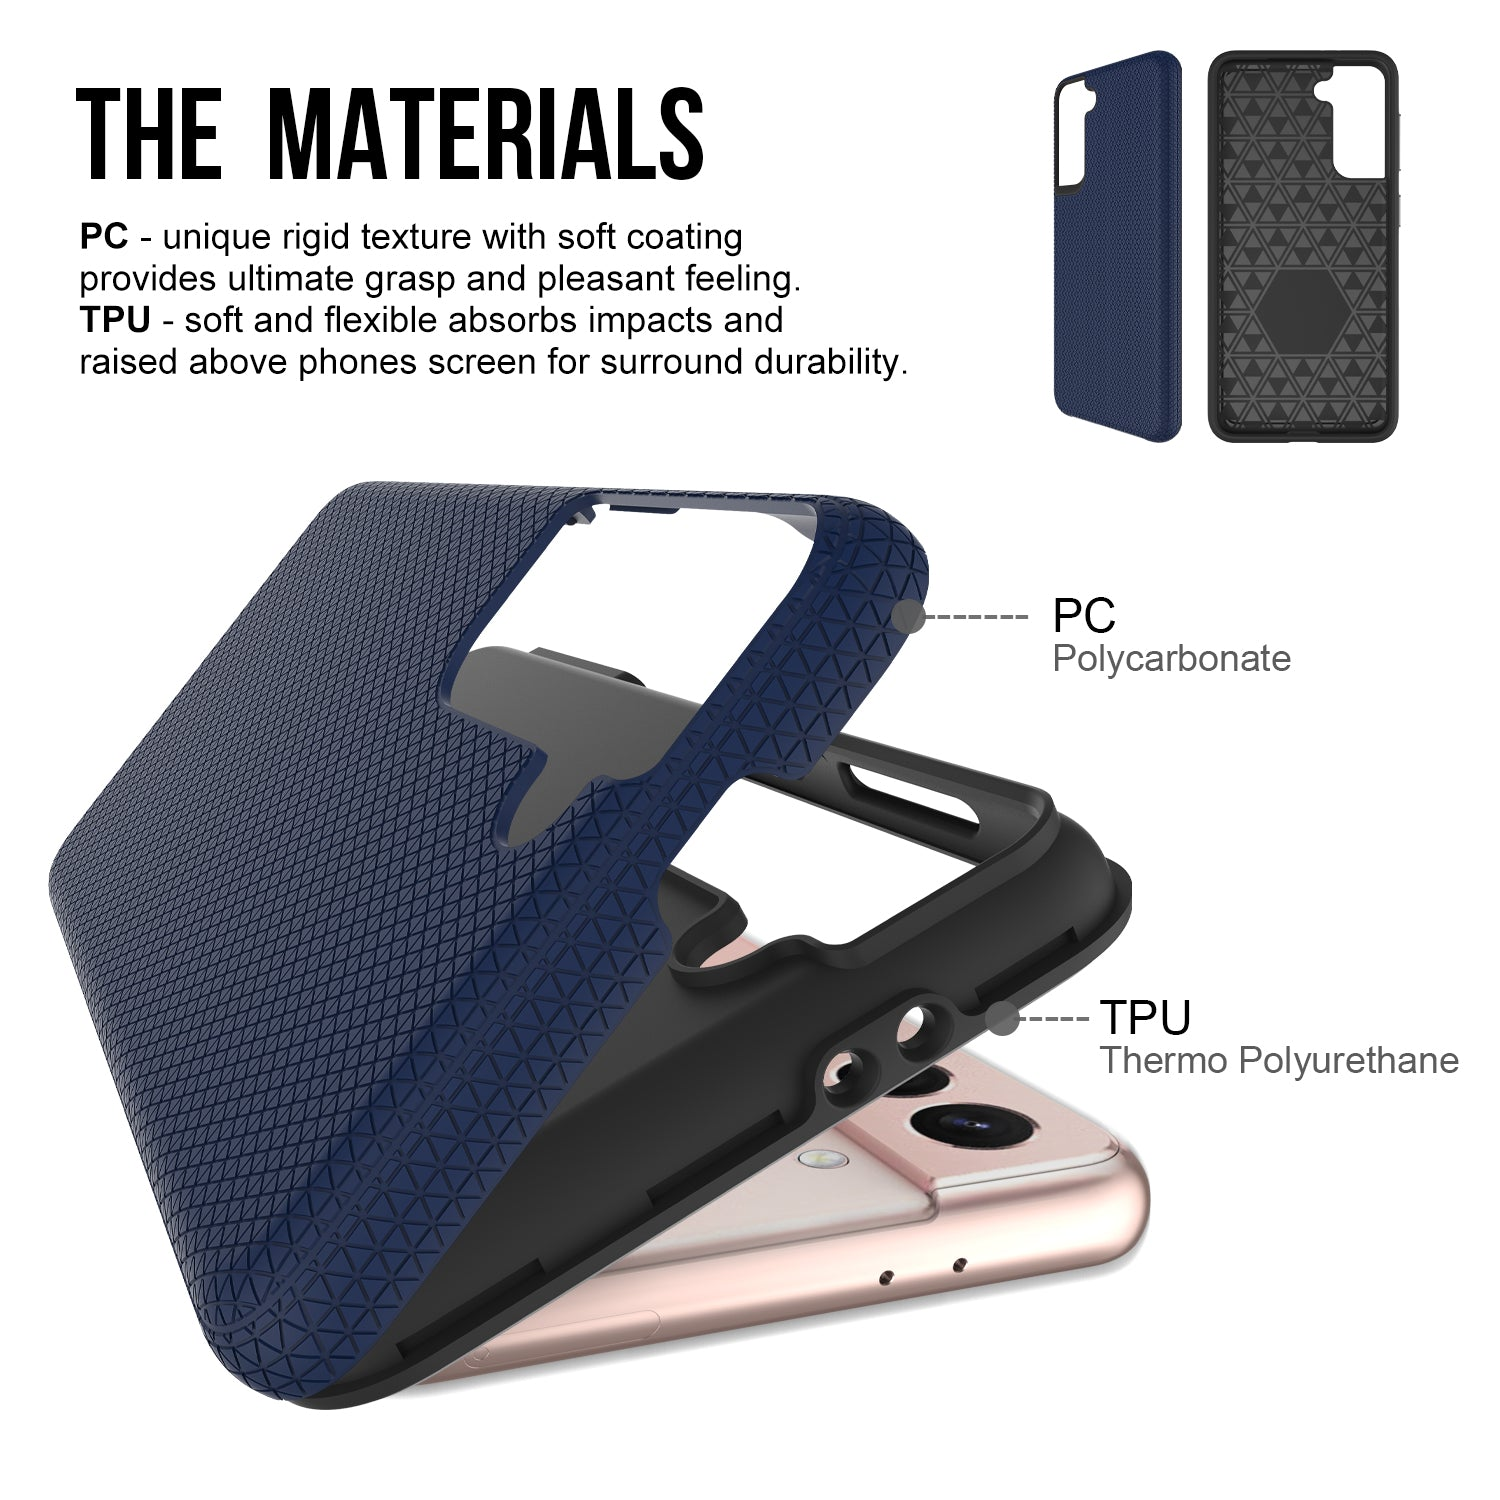 ZEOS Sphinx Dual Layer Case for Samsung Galaxy S21 Plus